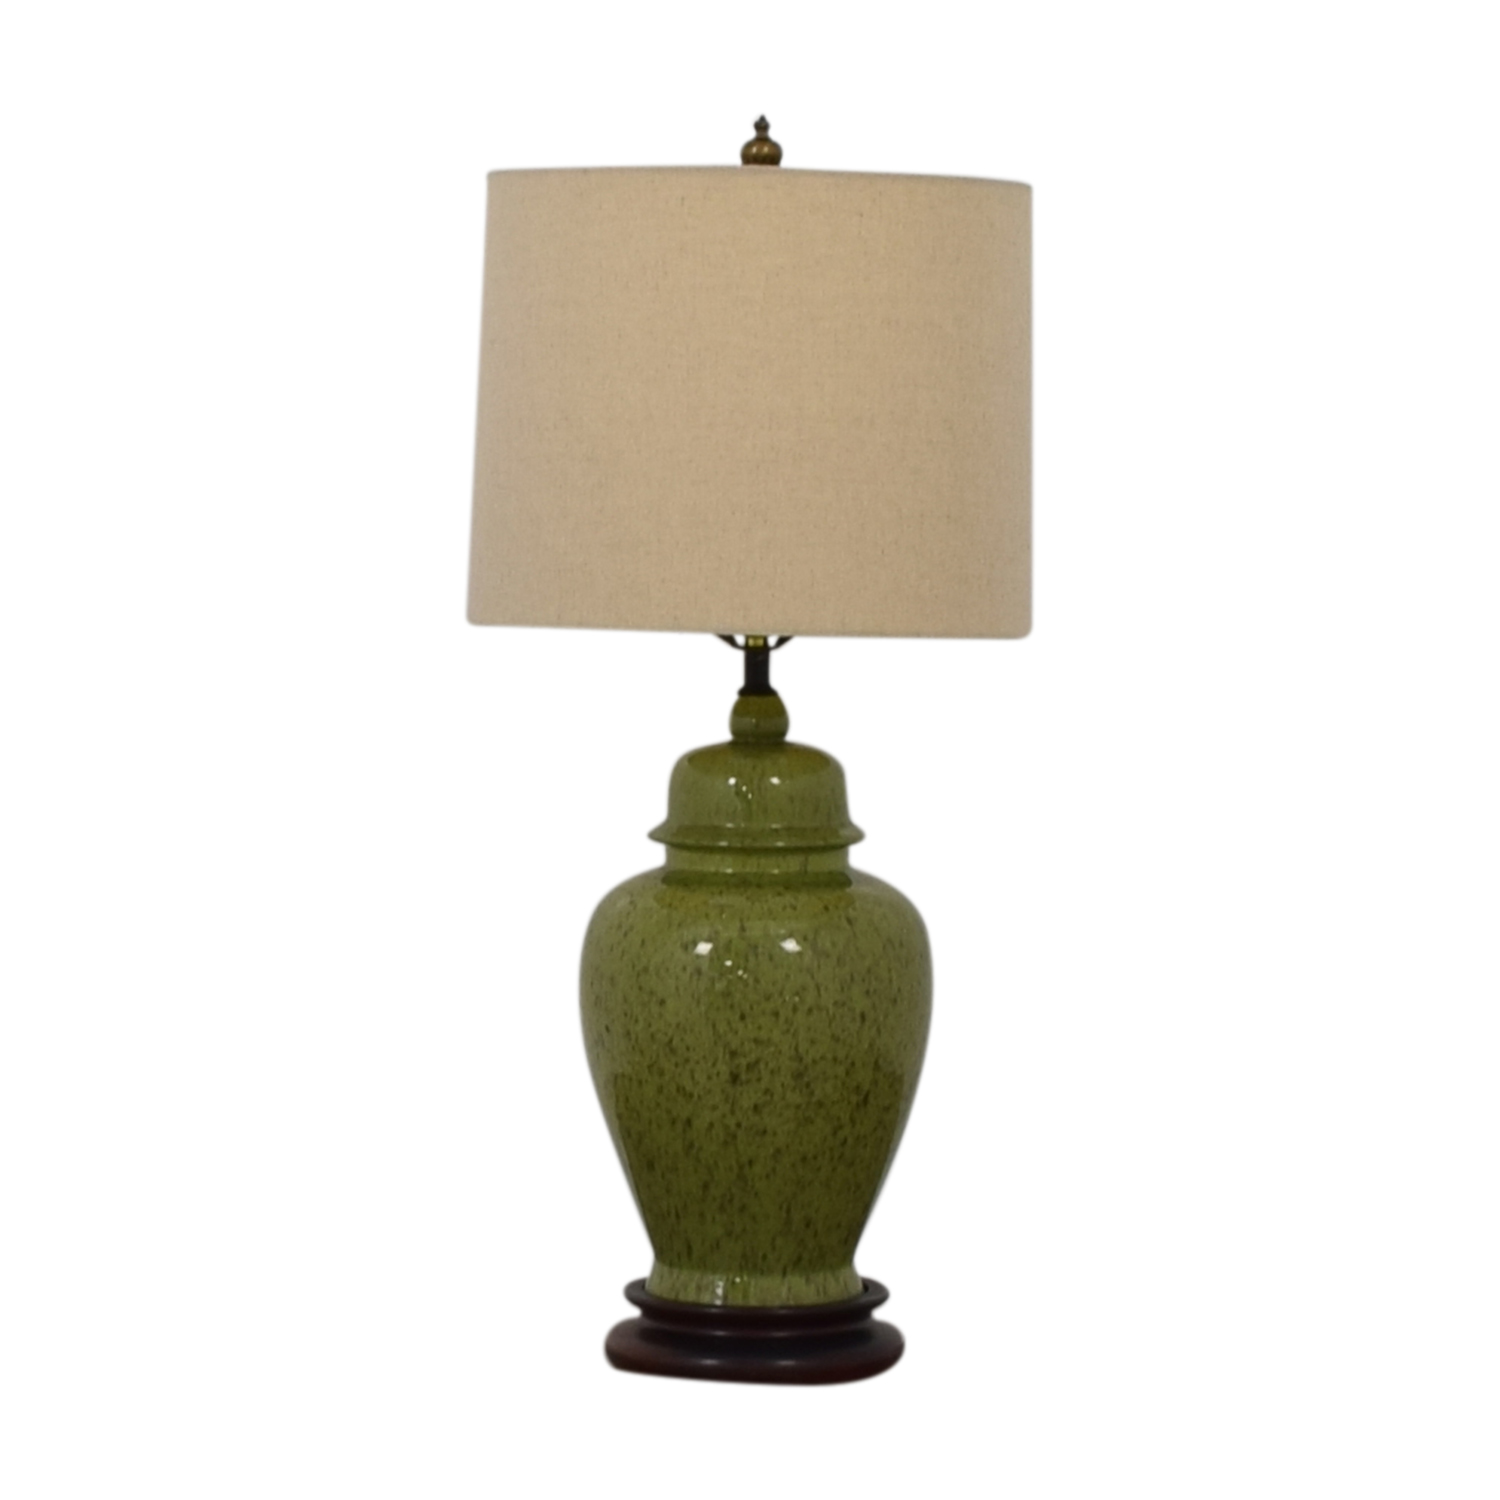 Green Ceramic Table Lamp Lamps